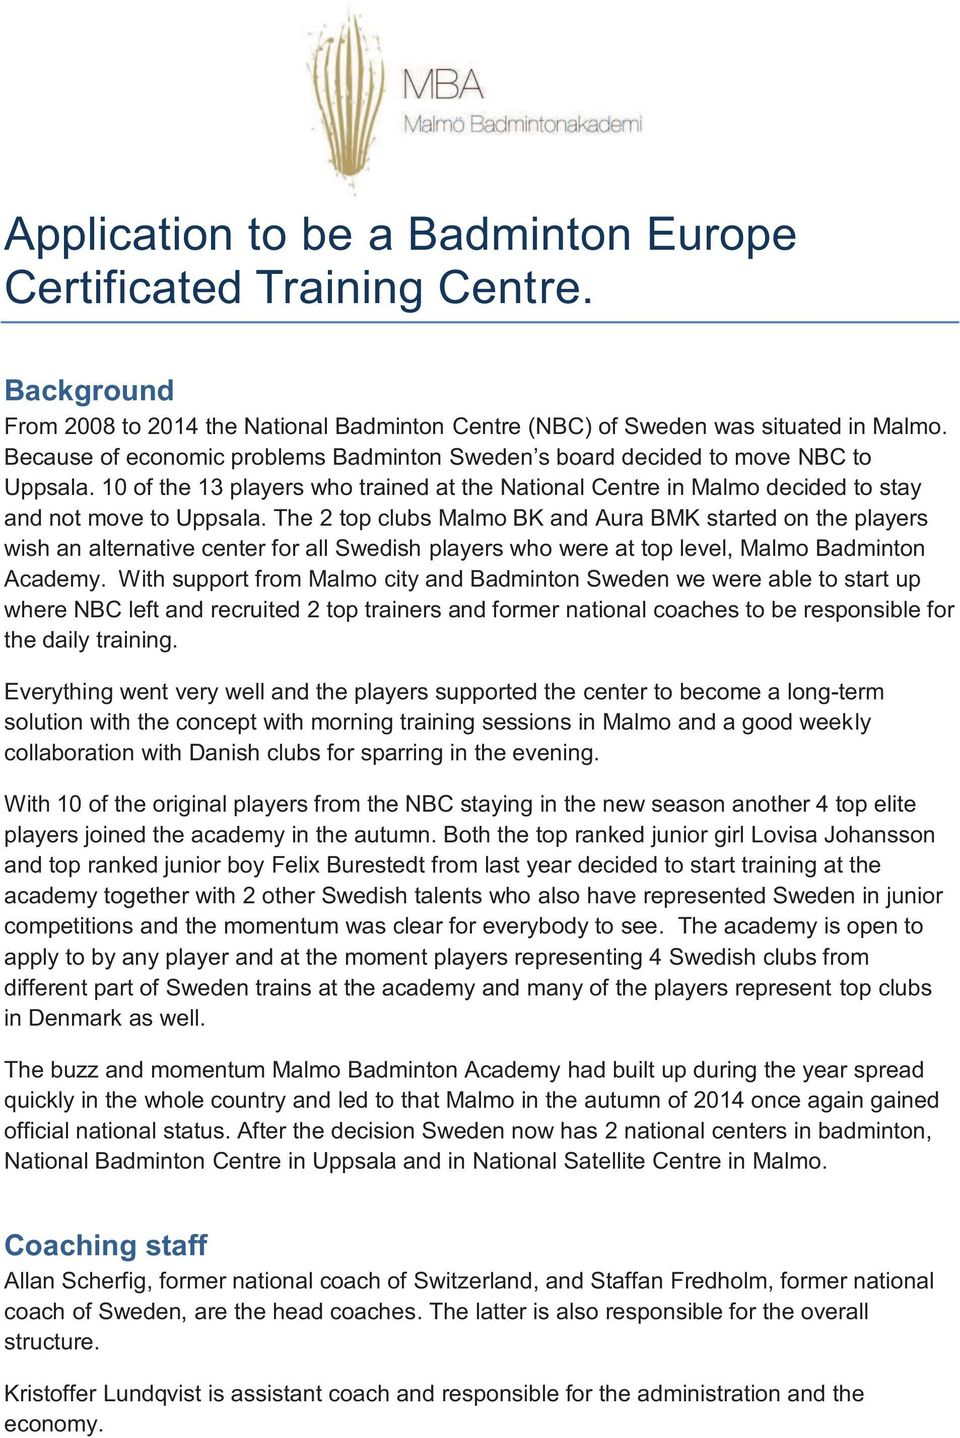 The 2 top clubs Malmo BK and Aura BMK started on the players wish an alternative center for all Swedish players who were at top level, Malmo Badminton Academy.